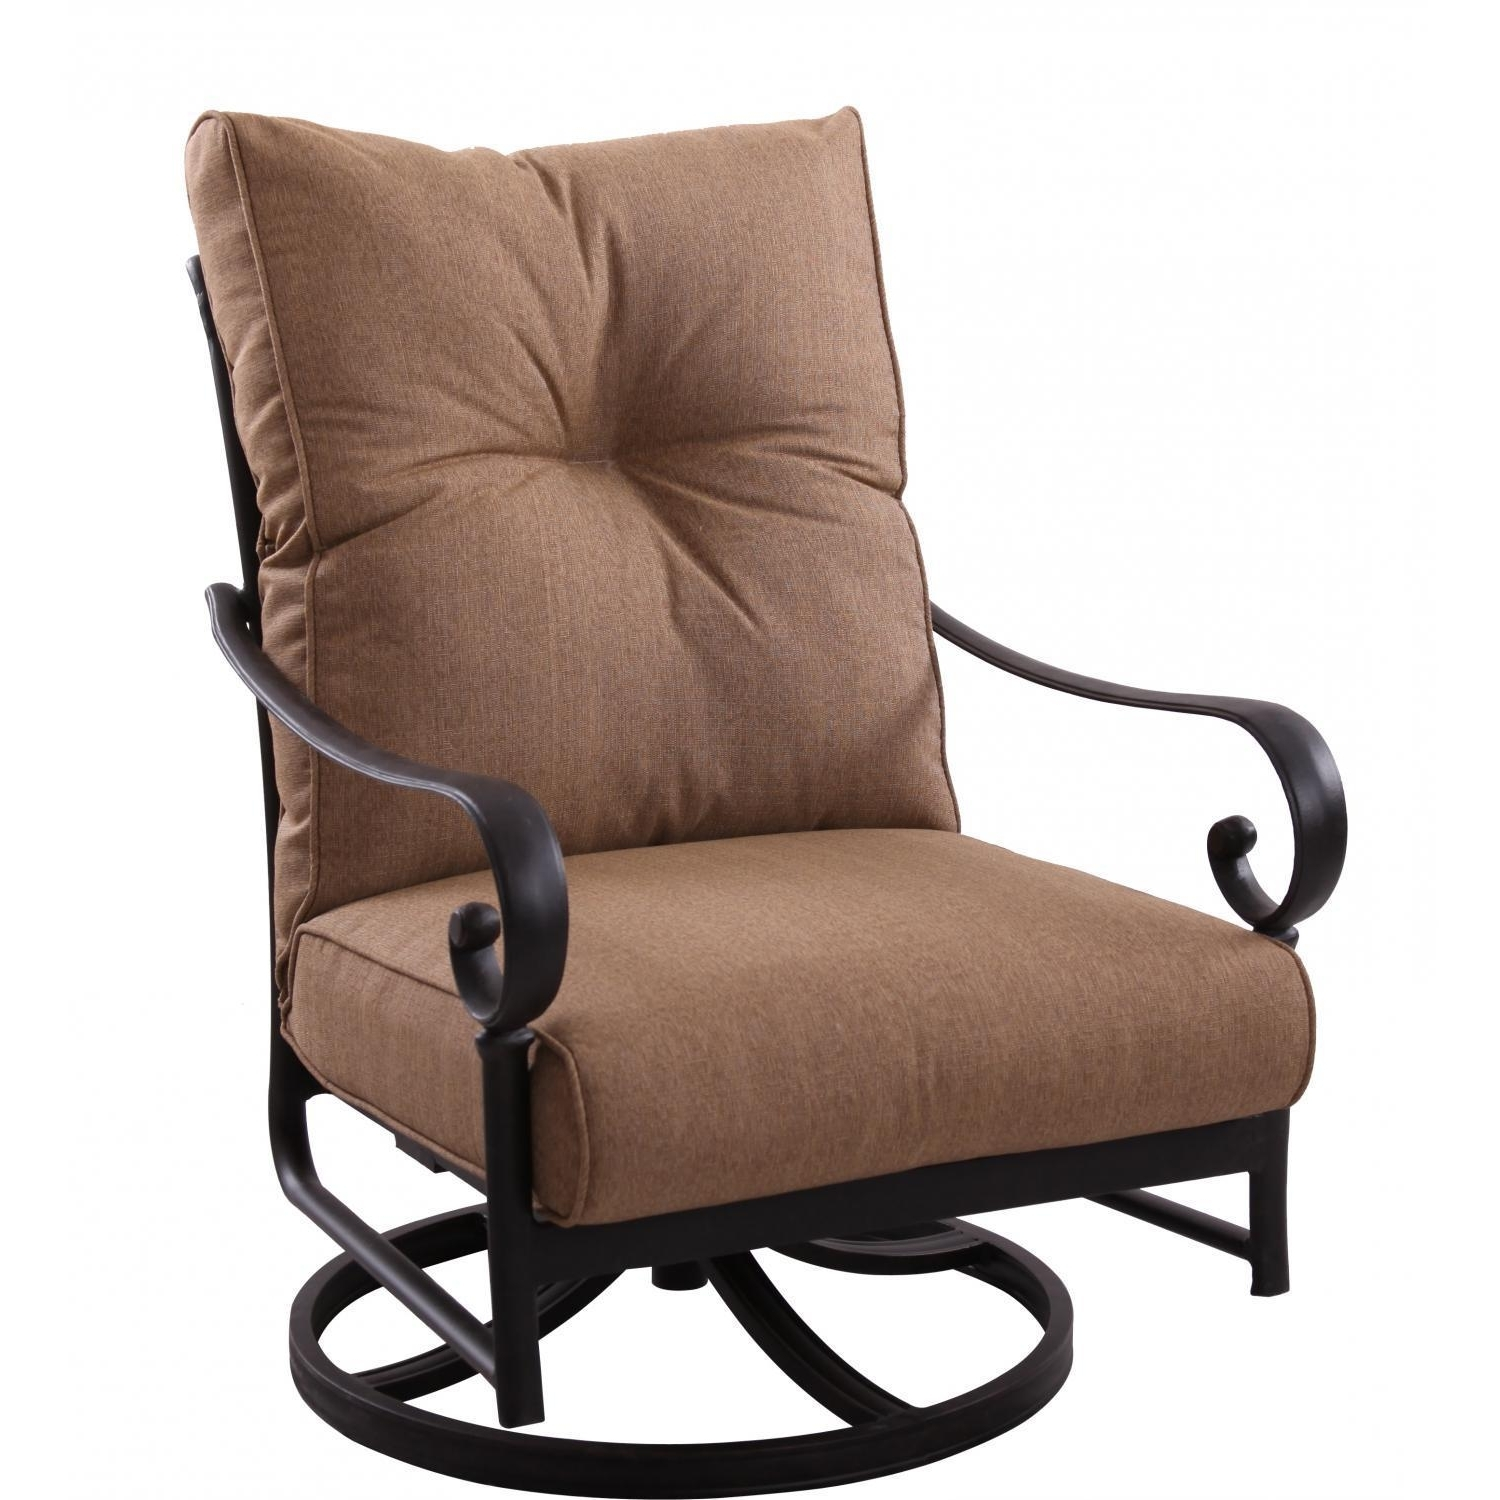 Darlee Santa Anita Cast Aluminum Patio Swivel Rocker Club Chair In Most Up To Date Rocking Chairs For Patio (View 2 of 15)